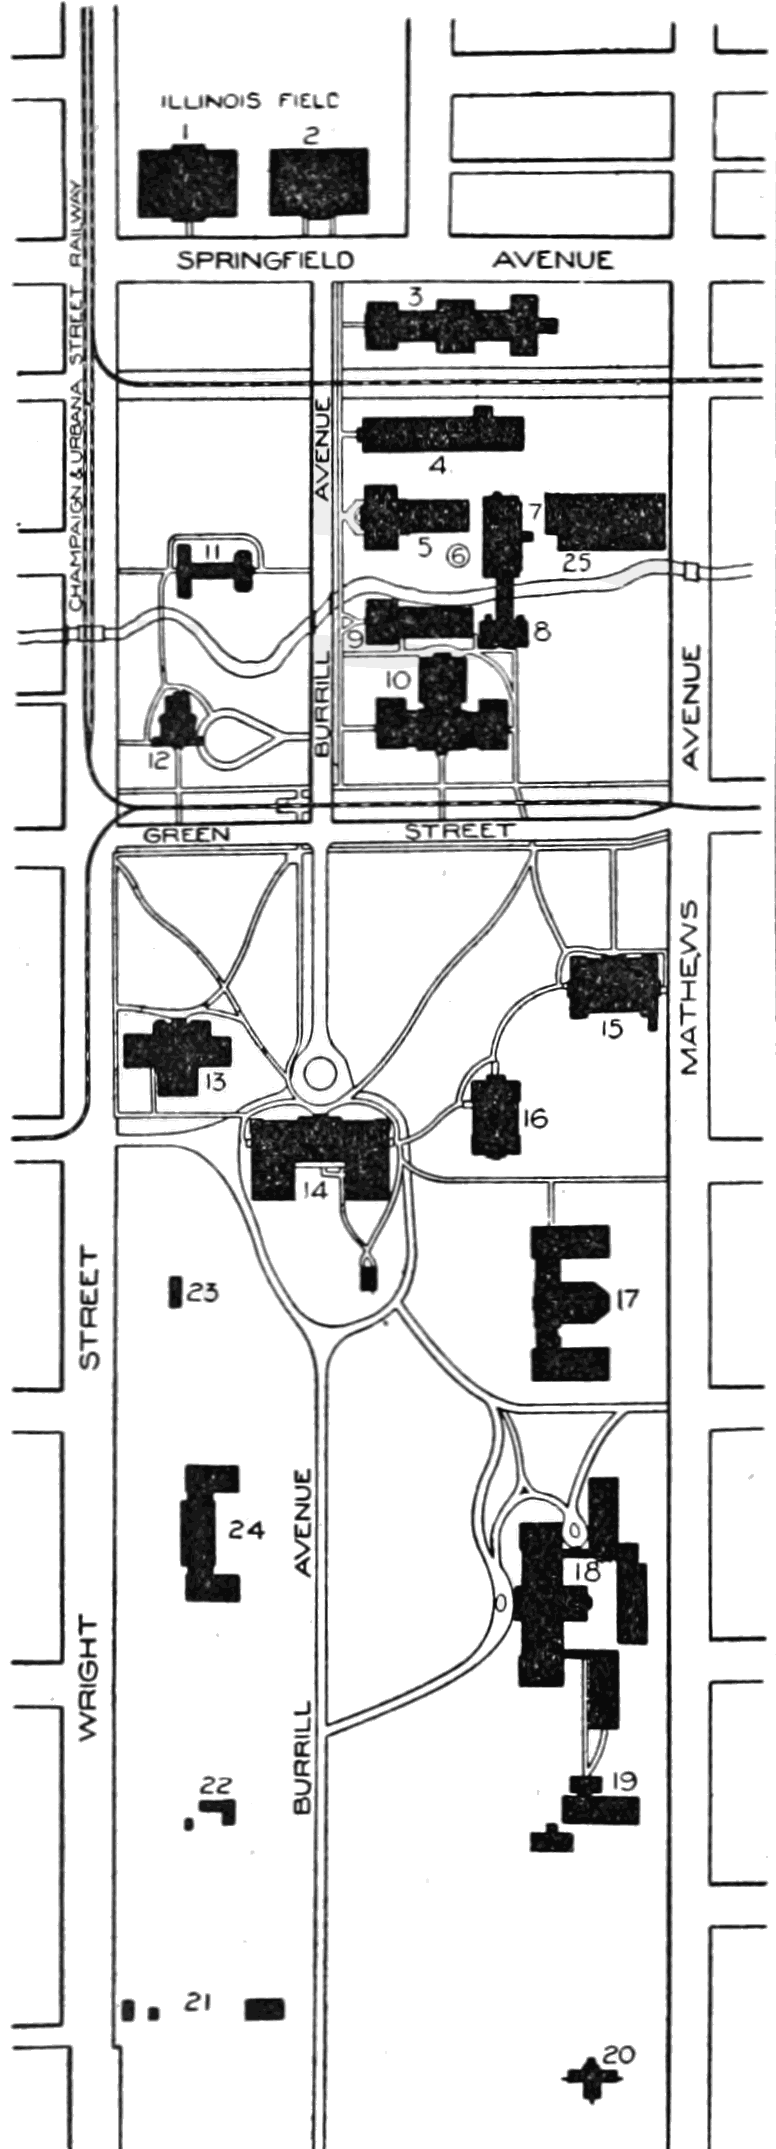 PSM V67 D762 Street map of the university of illinois campus.png